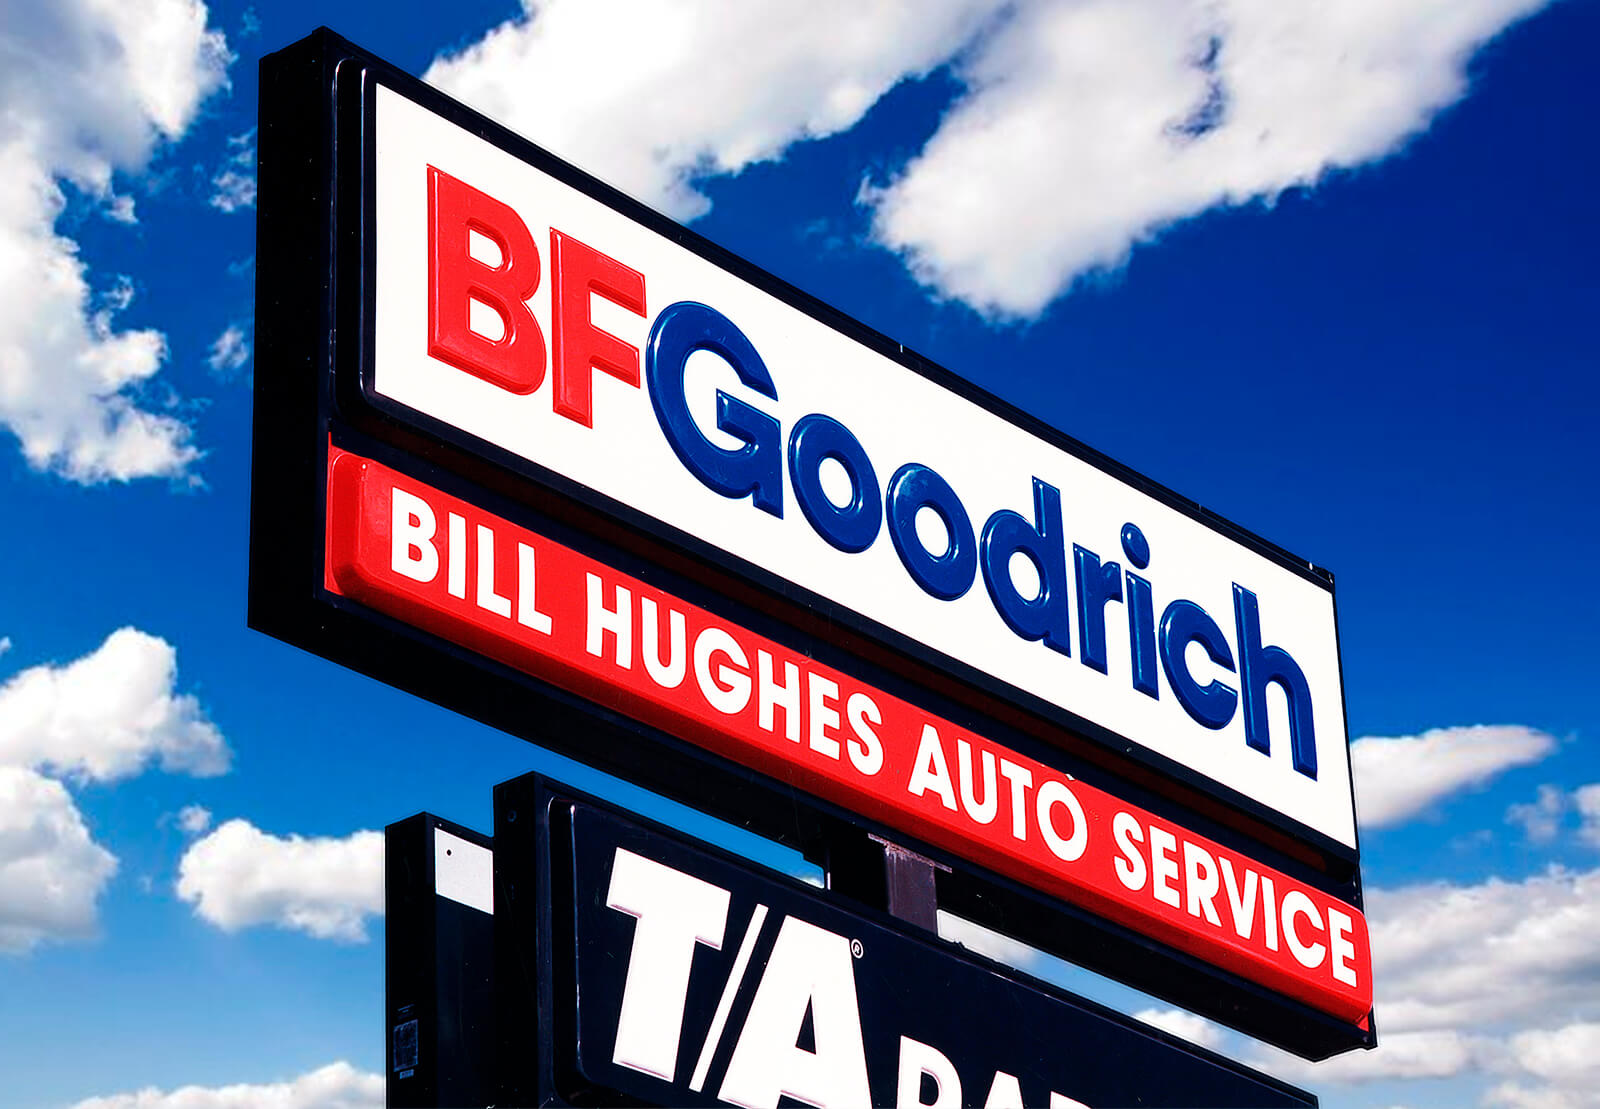 A massive sky high BFGoodrich sign with a custom franchise auto service name.